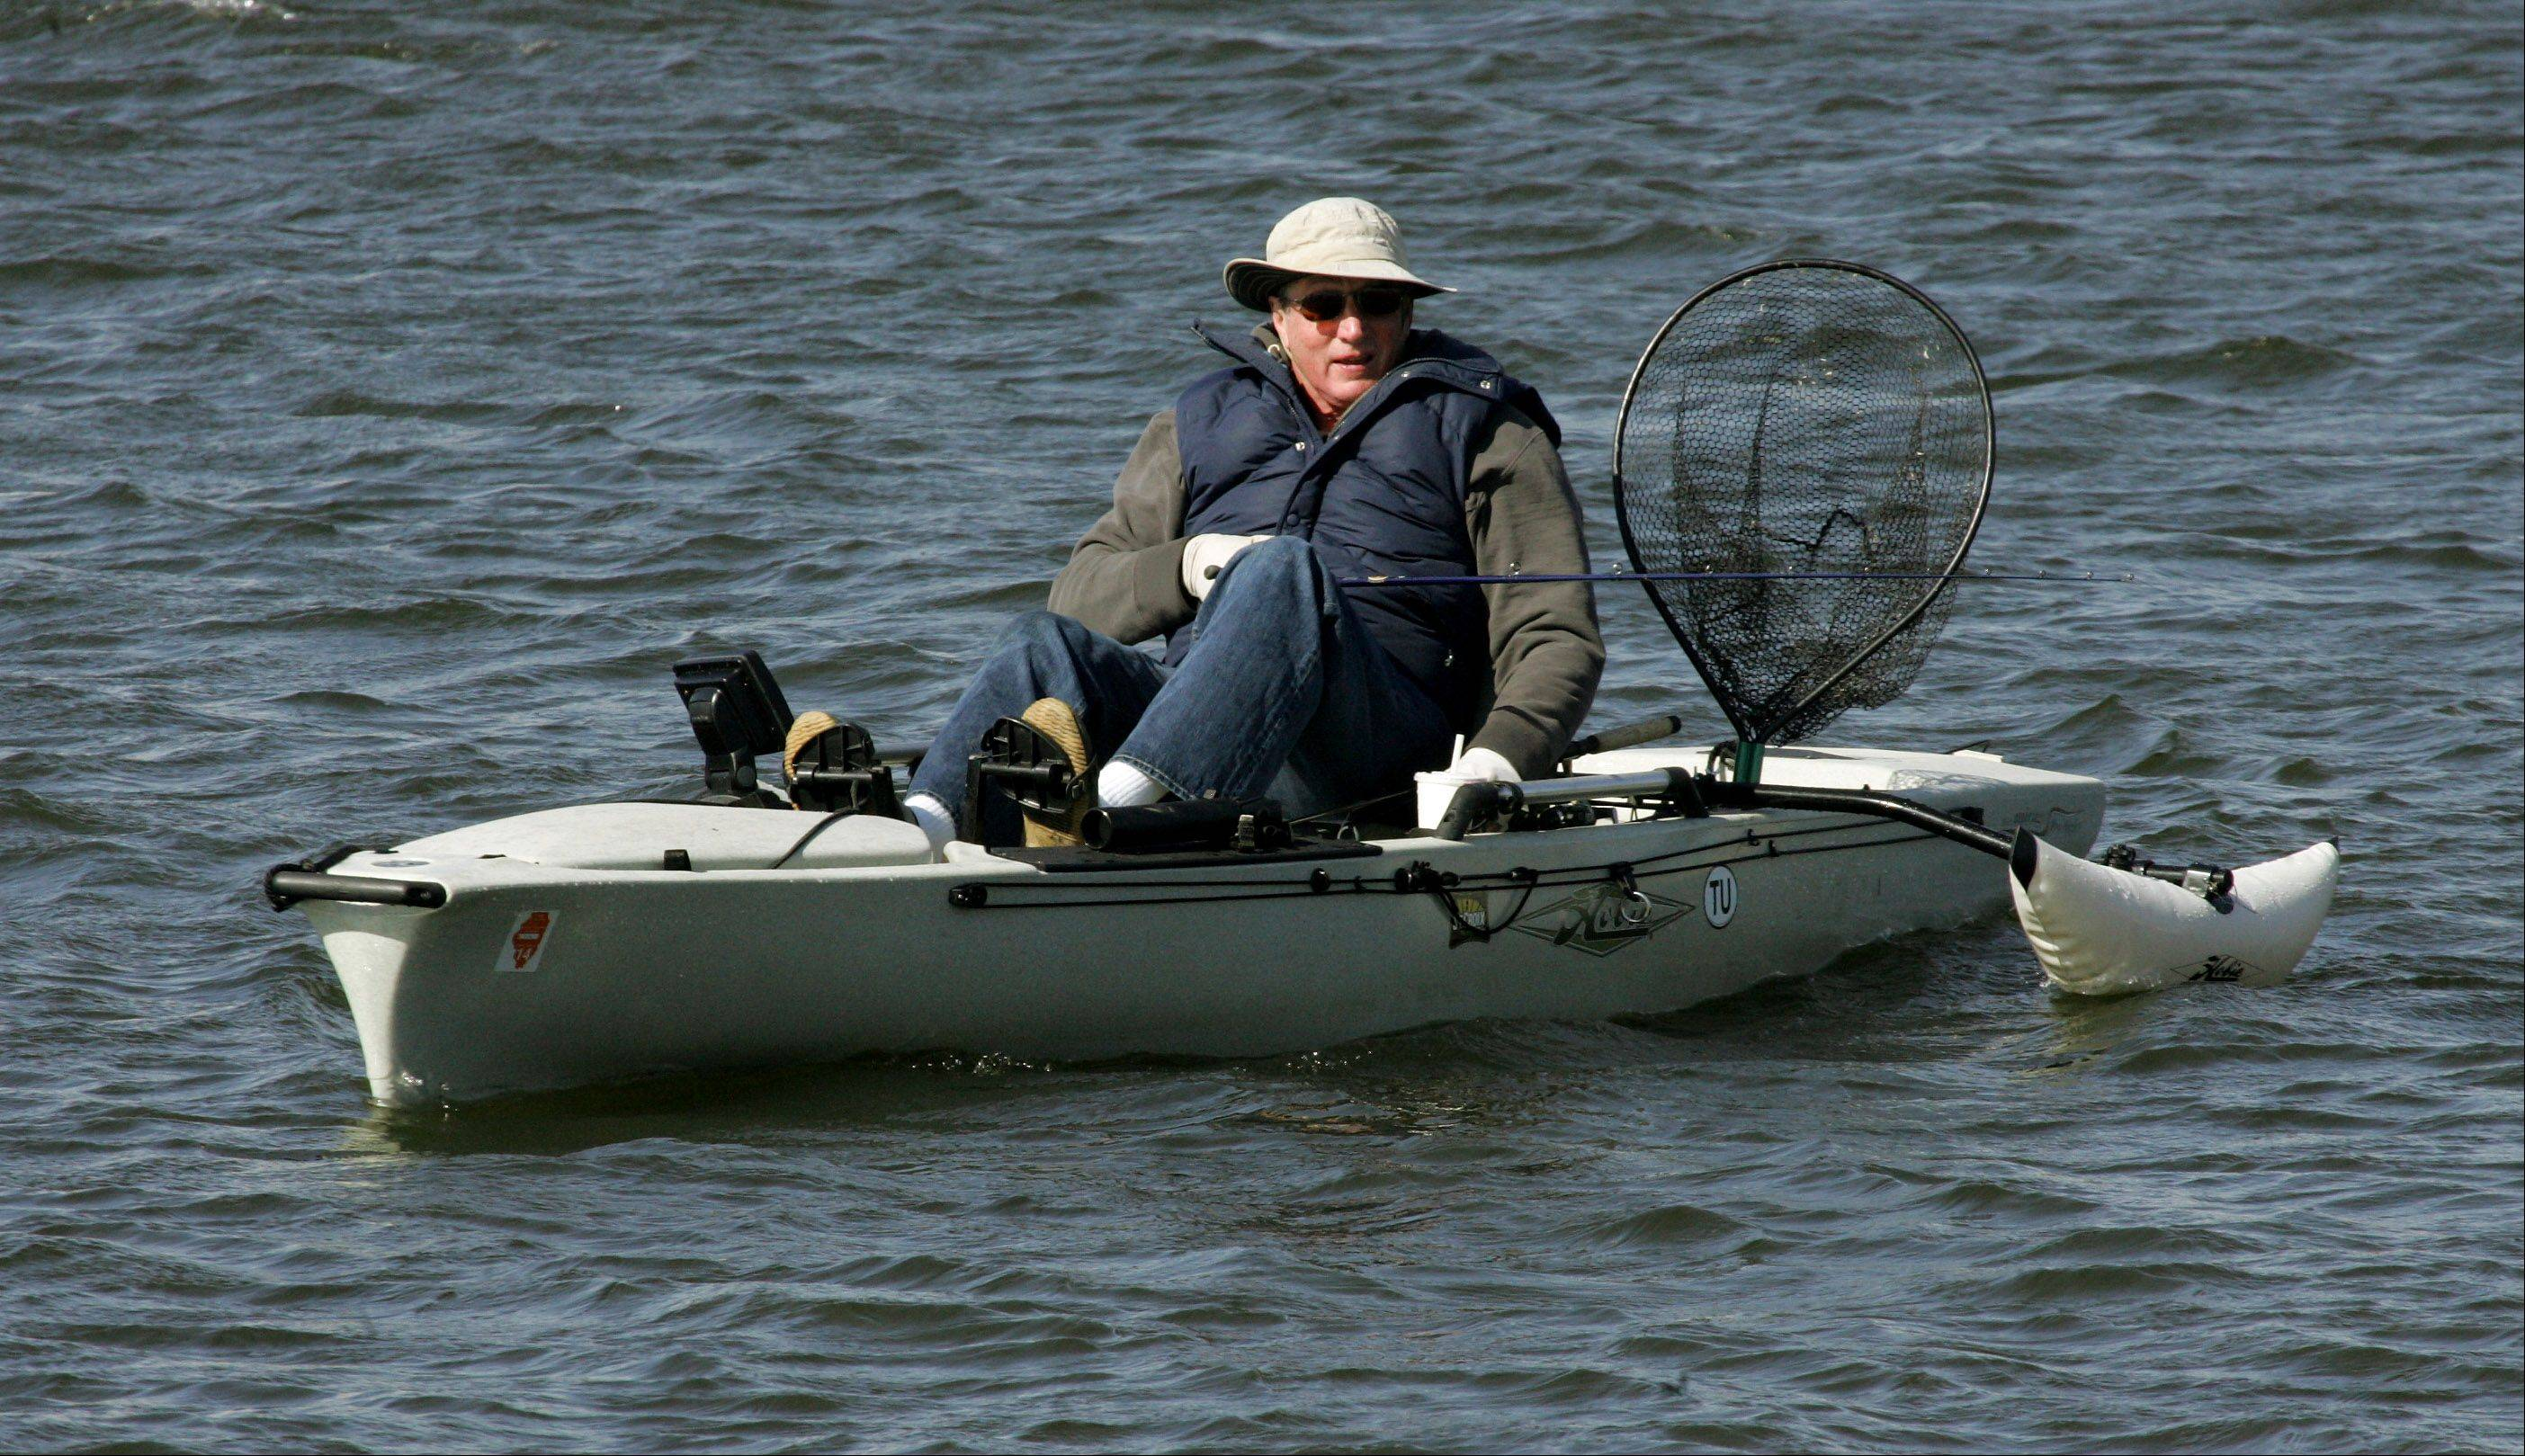 Grayslake resident Ken Haney paddles his way against high winds Tuesday as he enjoys the warm weather by fishing on a pond in Prairie Crossing.